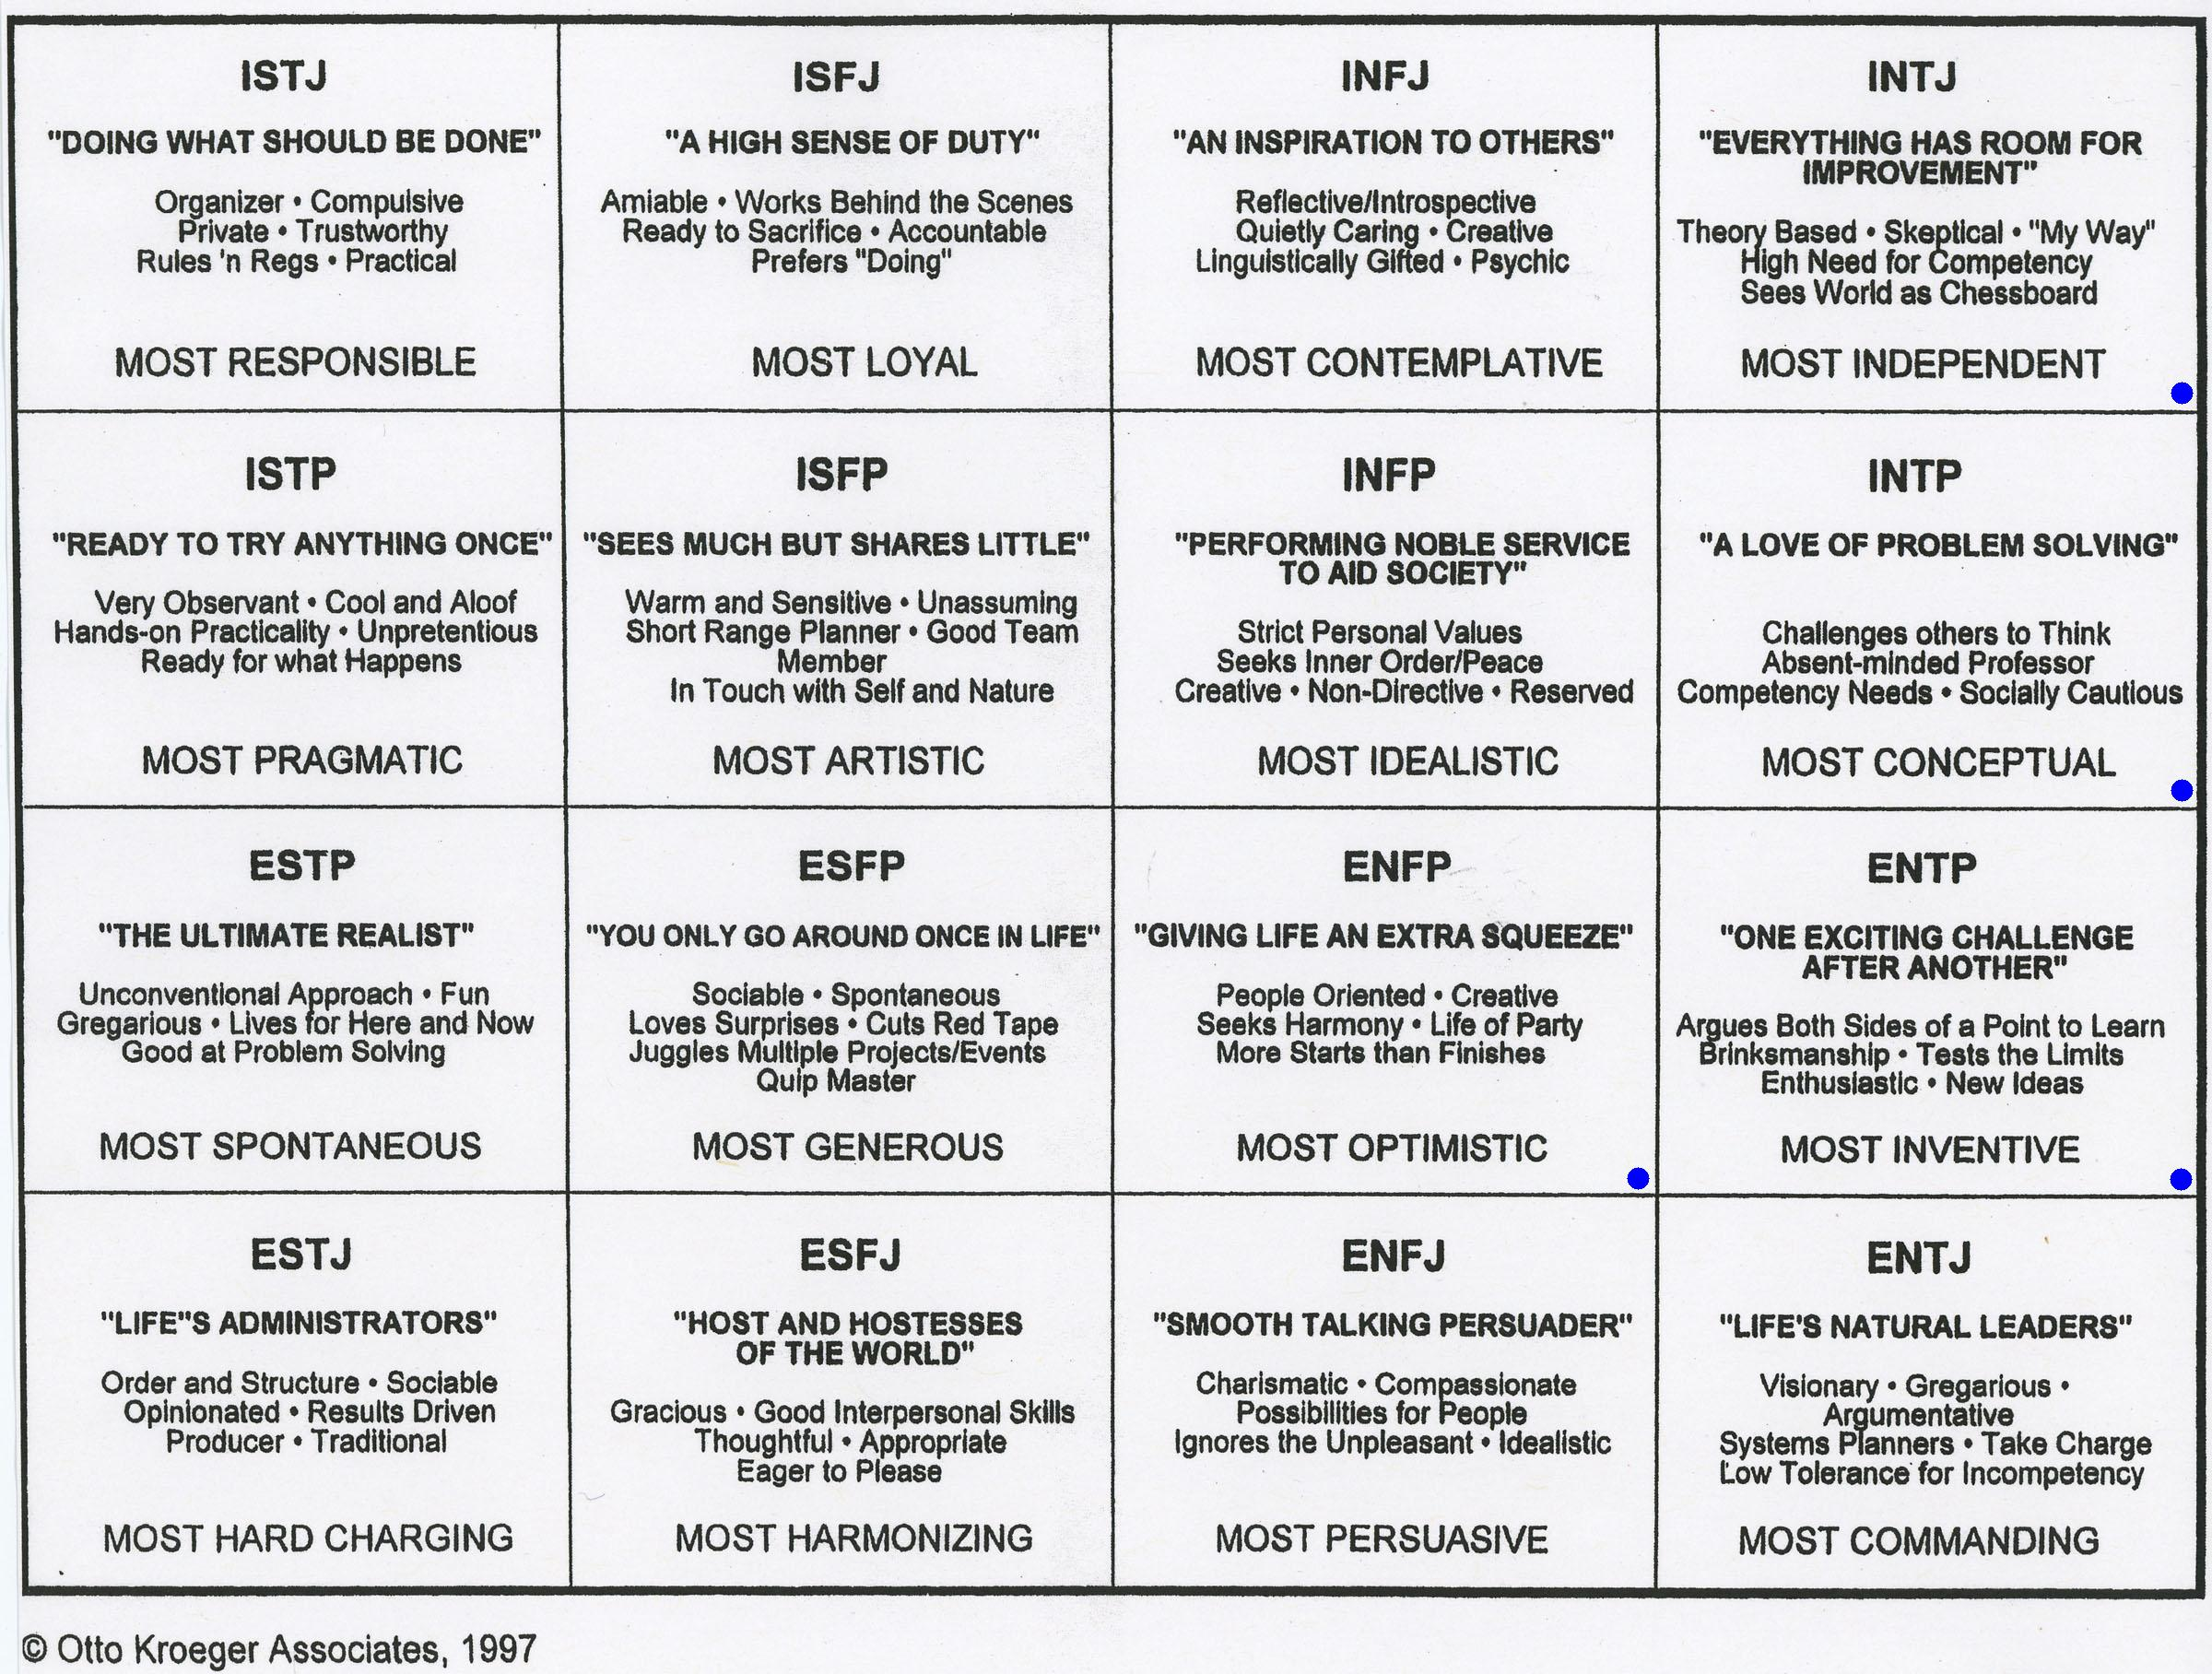 Personality Compatibility Myers Briggs Chart - Website of ledeclio!